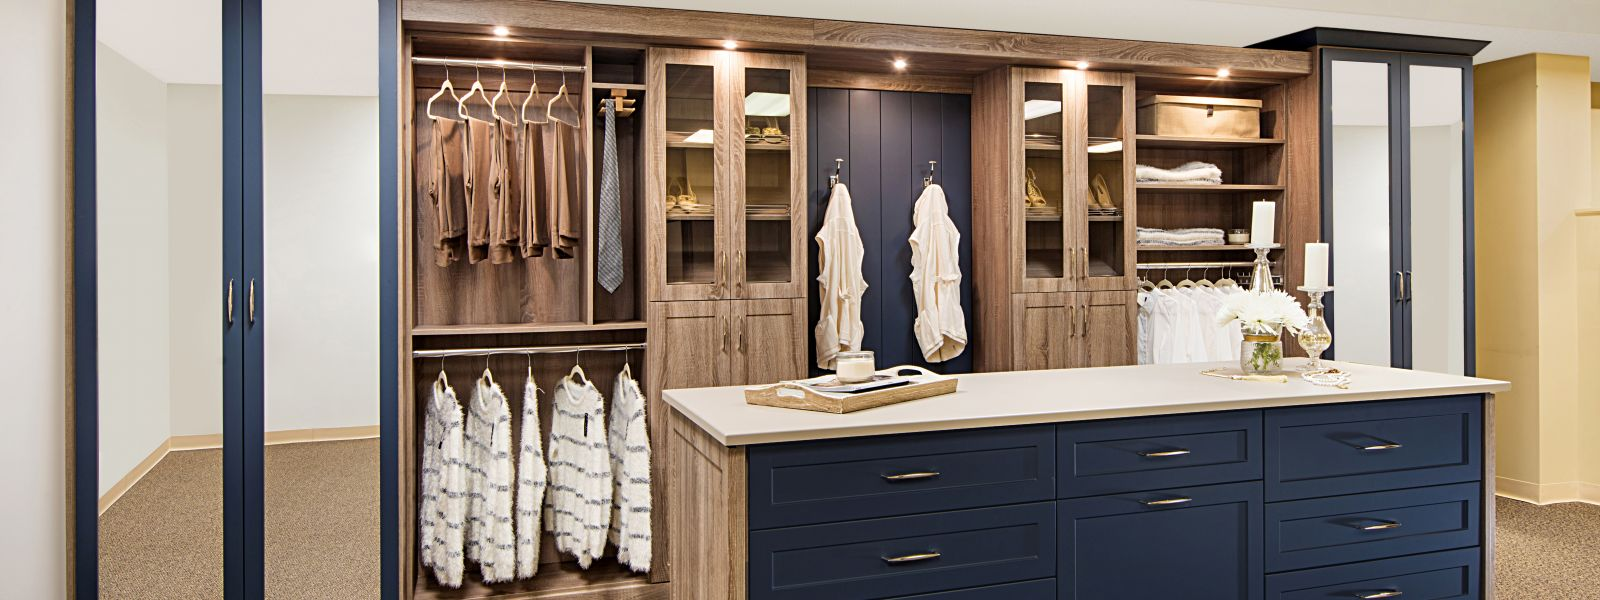 large walk-in closet with island